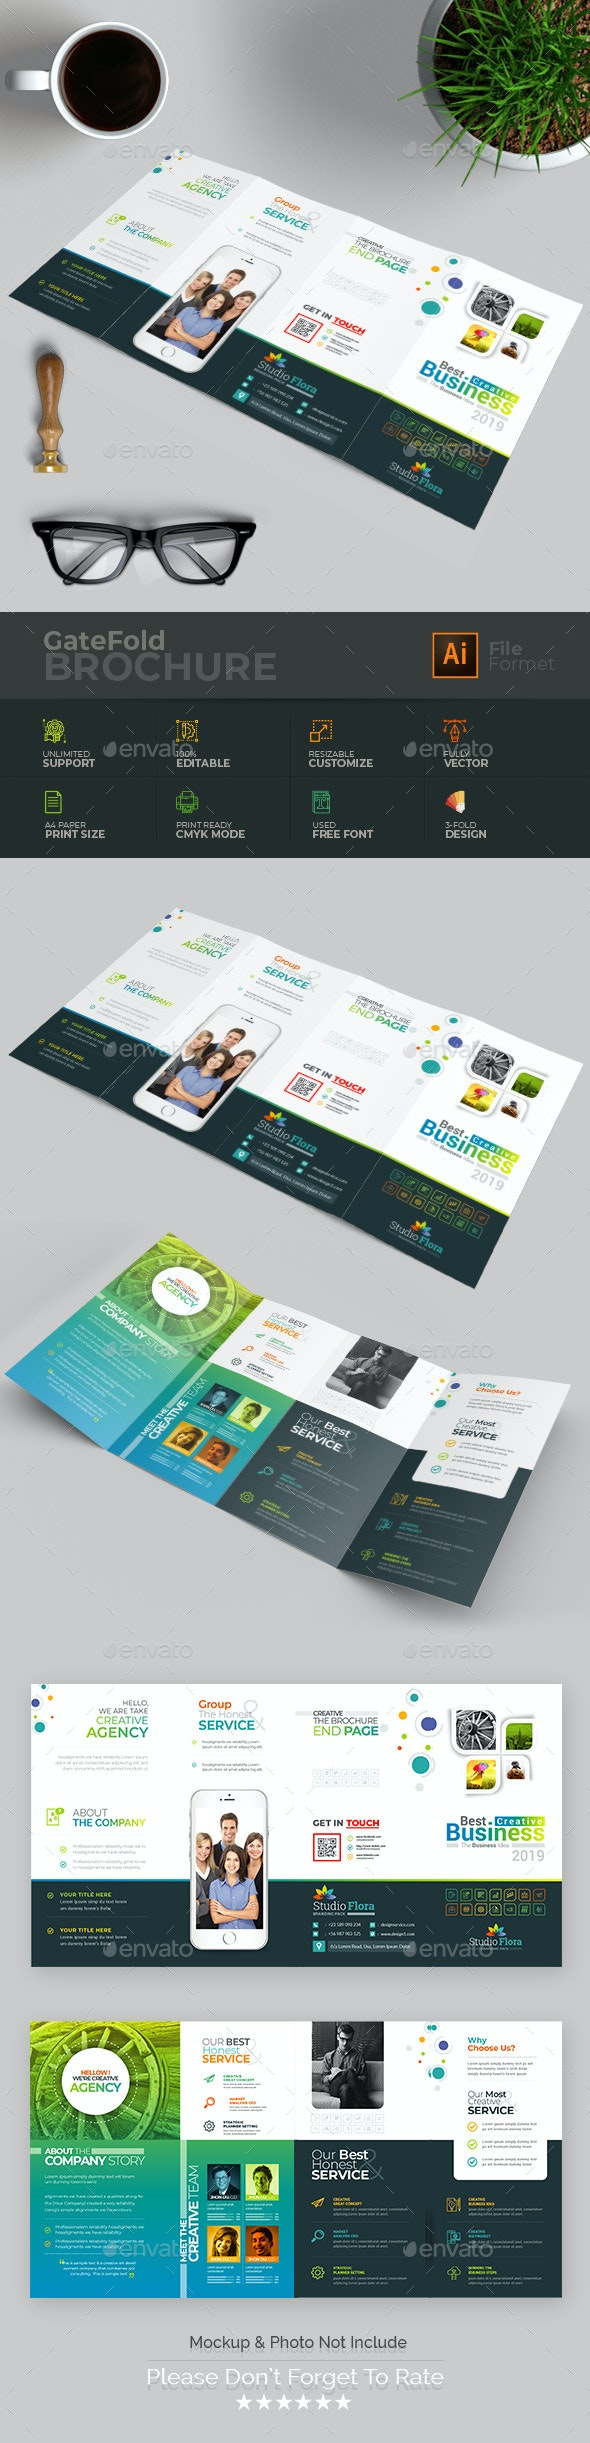 Double Gate-Fold Brochure - Brochures Print Templates